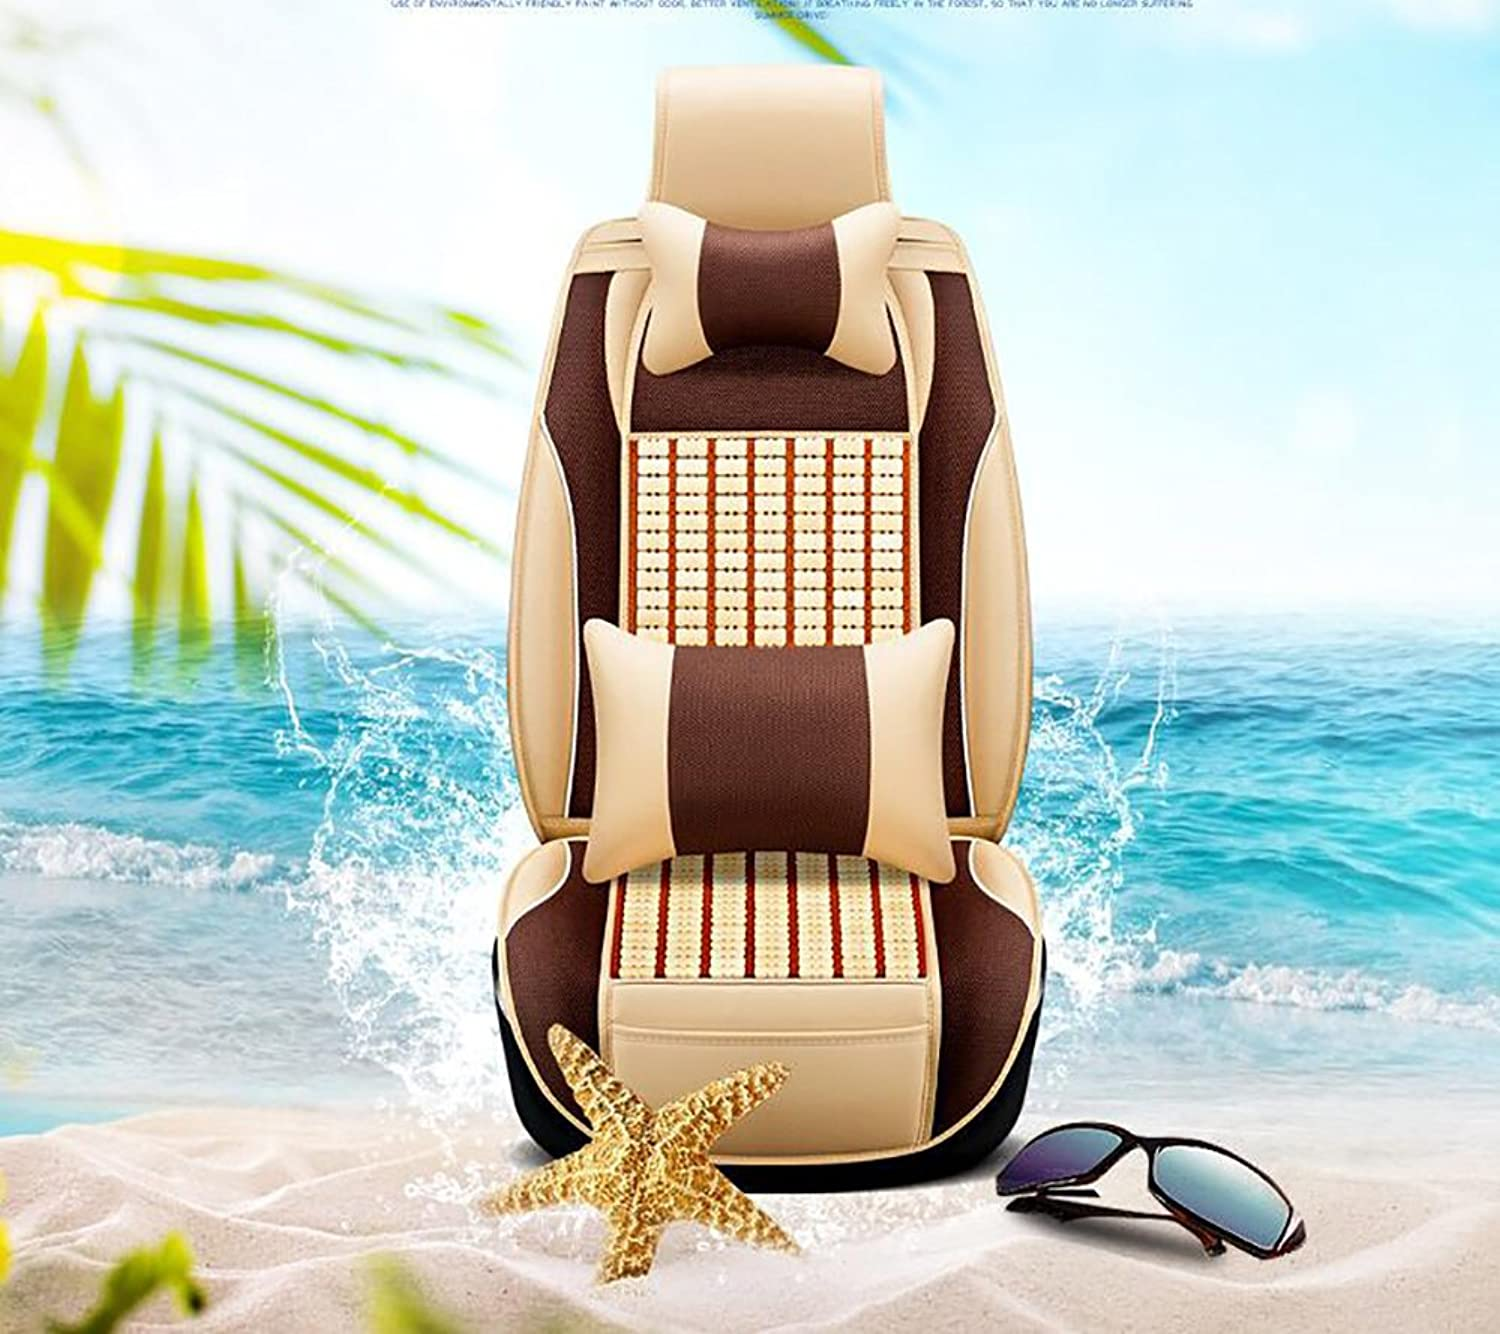 Of New Four Seasons General Wooden Bead Cushion Car Auto Supplies Seat Cover